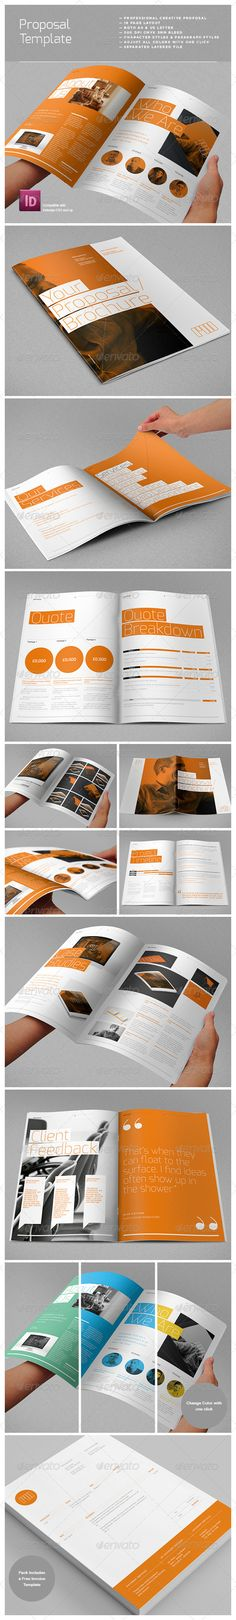 Buy Agency Proposal Template by RWDesignStudio on GraphicRiver. Features 18 page professional fully customisable proposal mockup was created with creative businesses in mind. Layout Design, Web Design, Print Layout, Page Design, Flyer Design, Book Design, Design Brochure, Brochure Layout, Design Resume